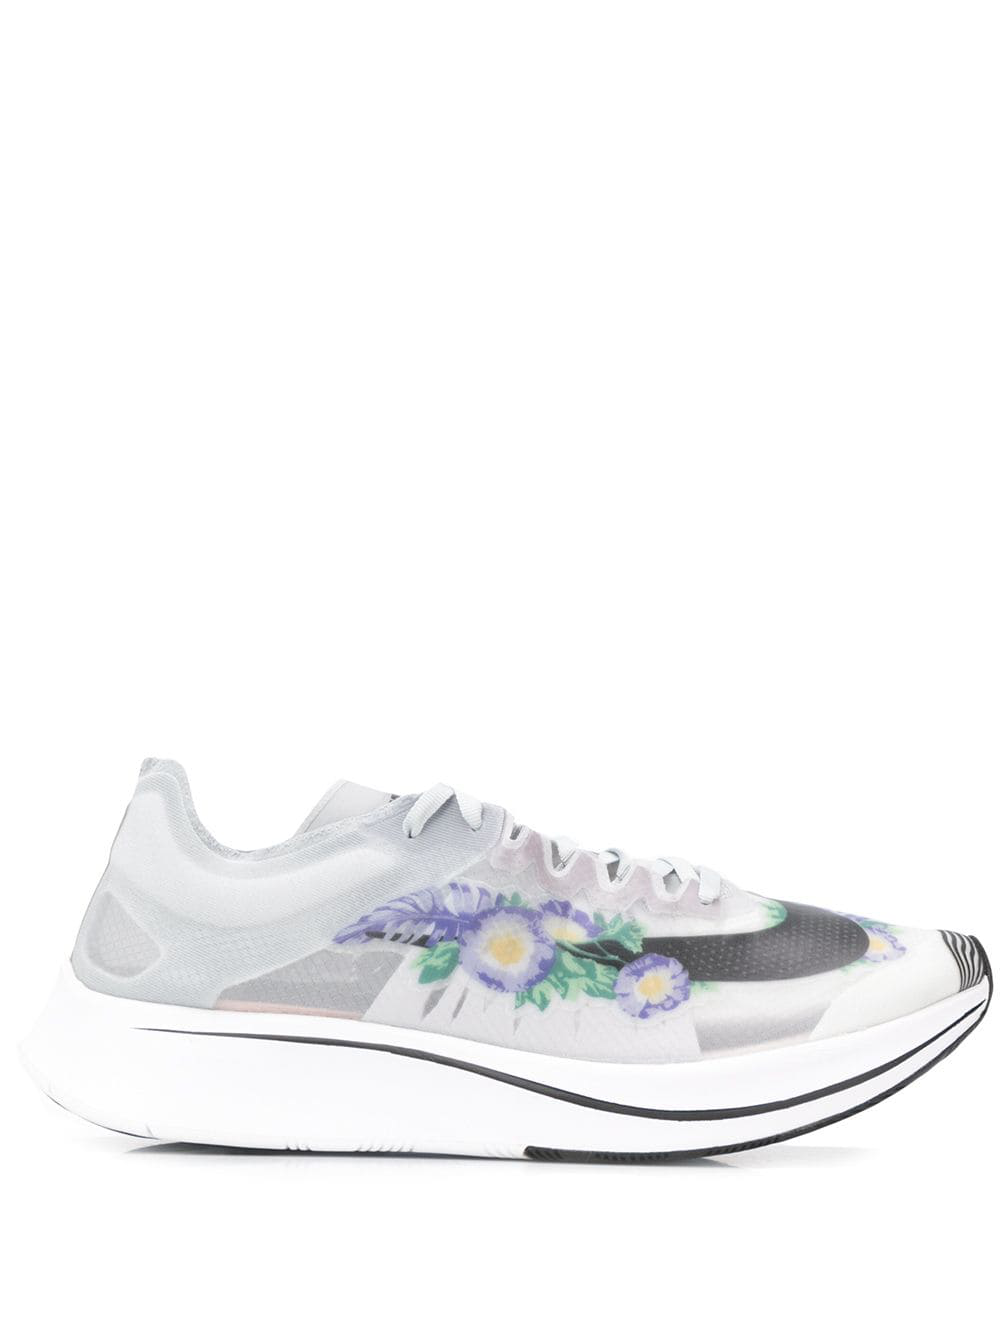 7574043acd64 Nike Zoom Fly Sp Gpx Rs Sneakers - Grey. Farfetch